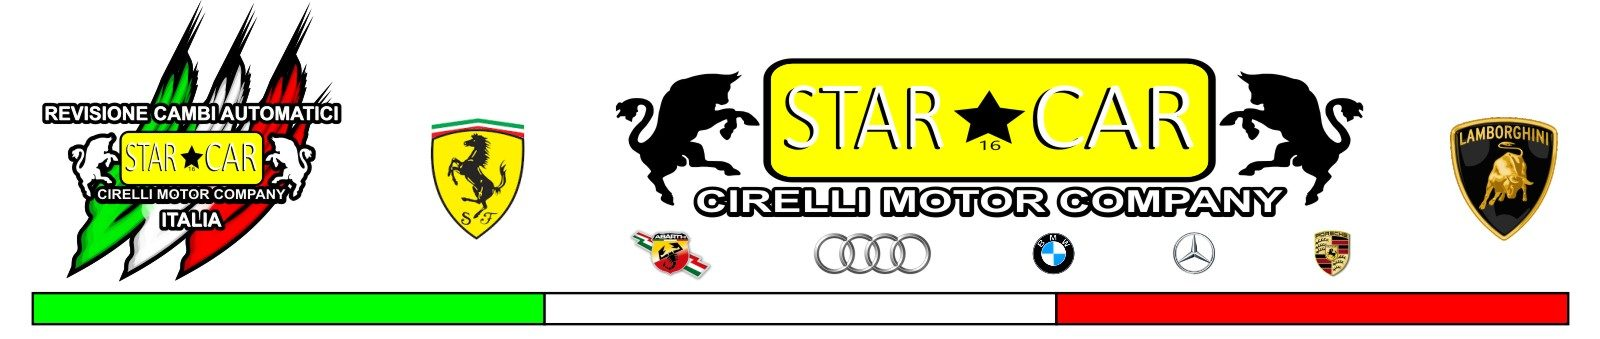 OFFICINA STAR CAR